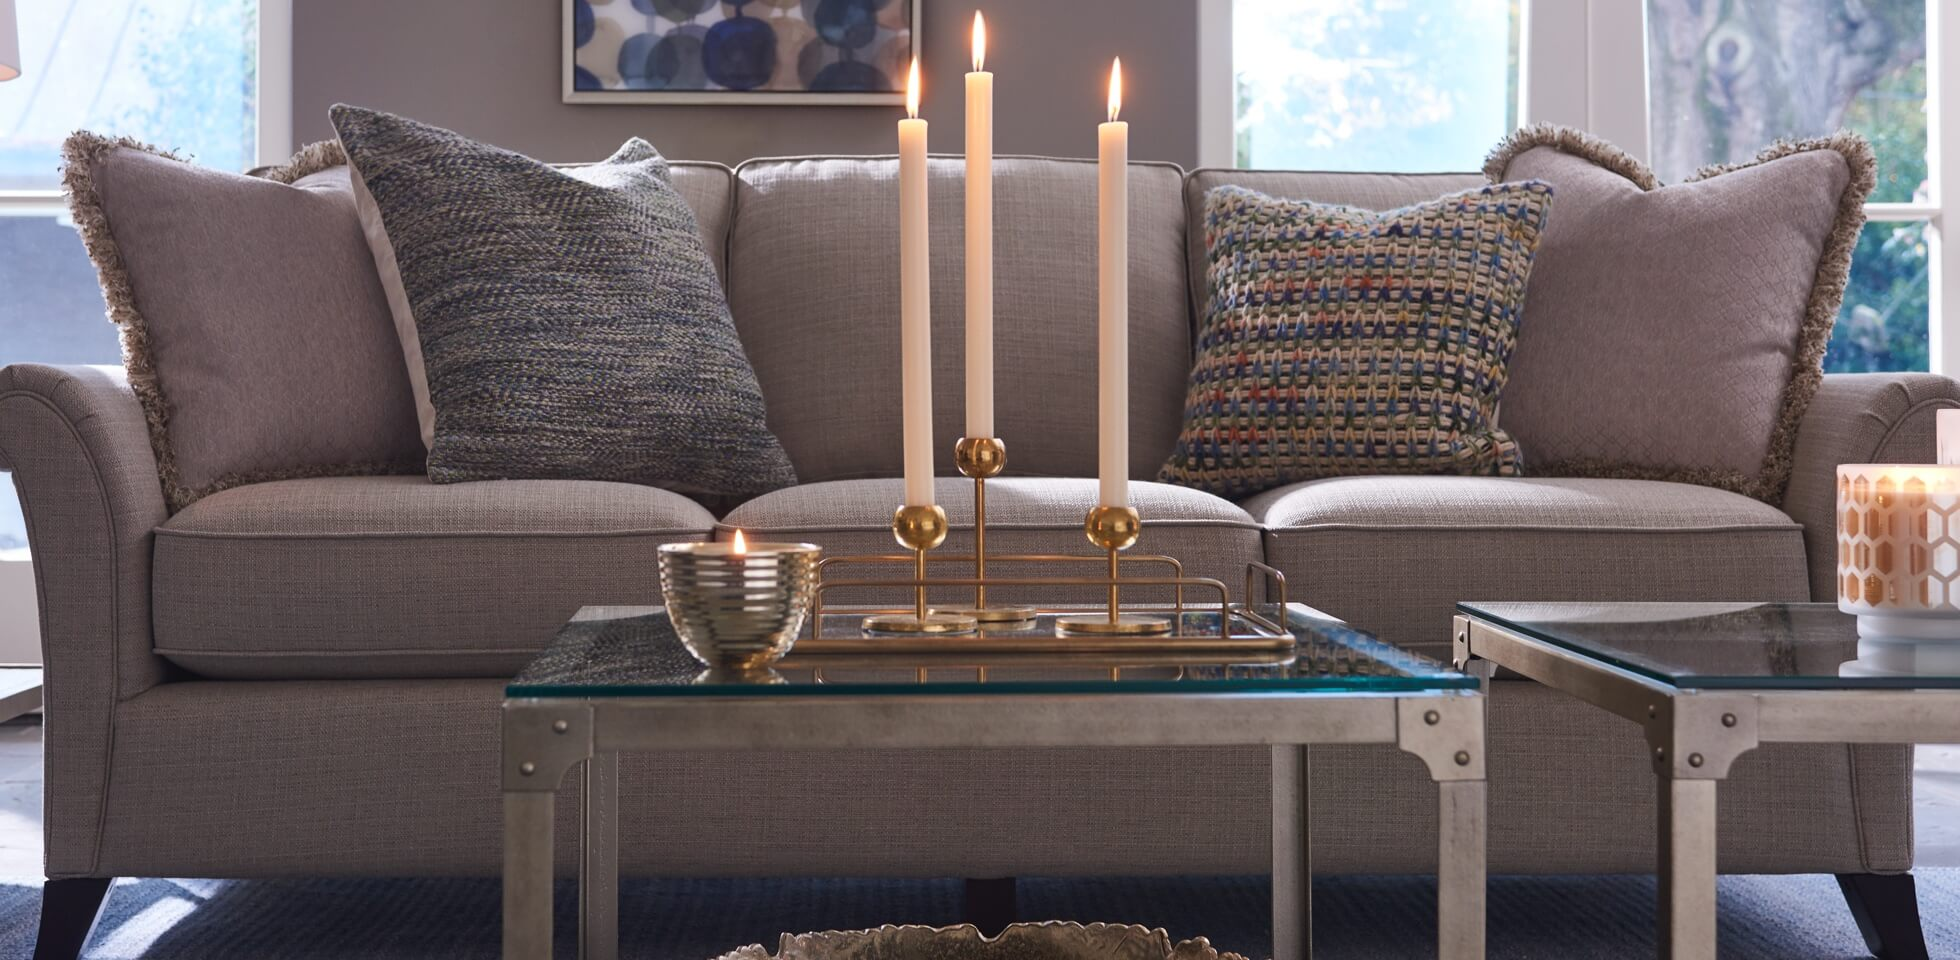 Phoebe sofa with tables and candles